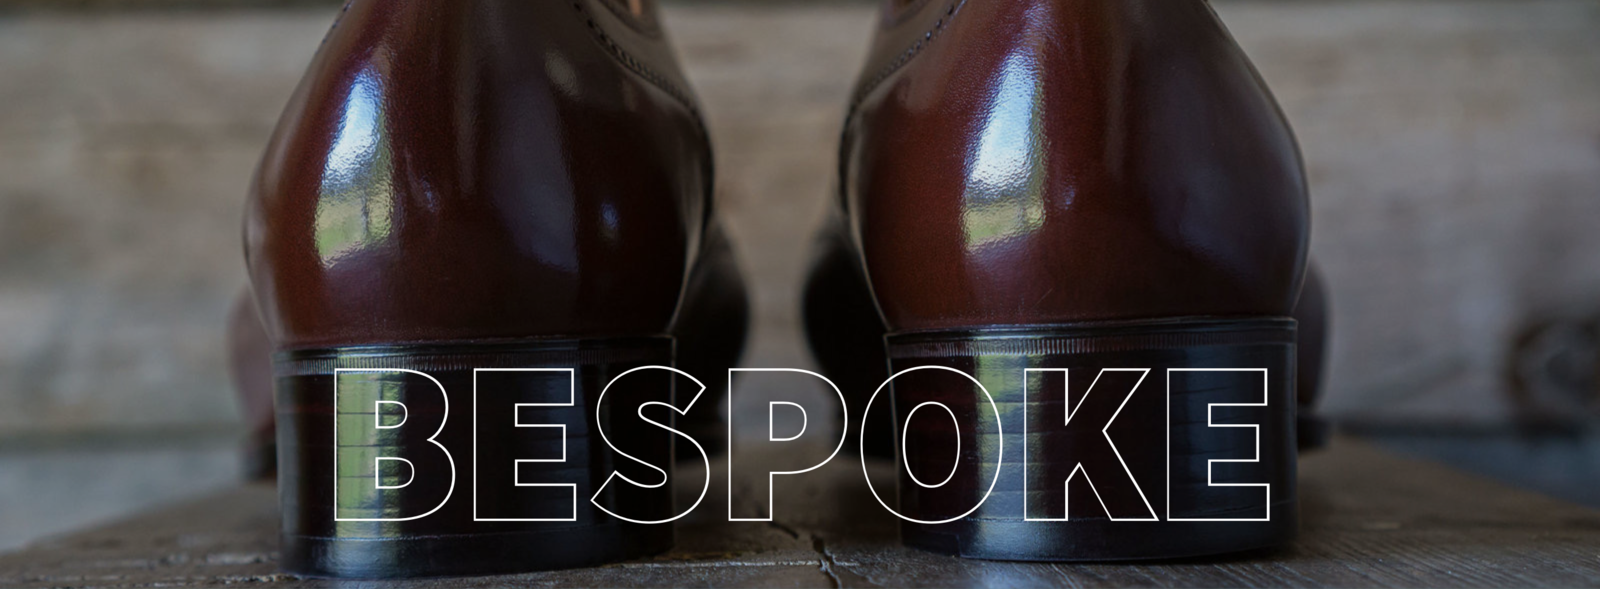 bespoke shoes.PNG